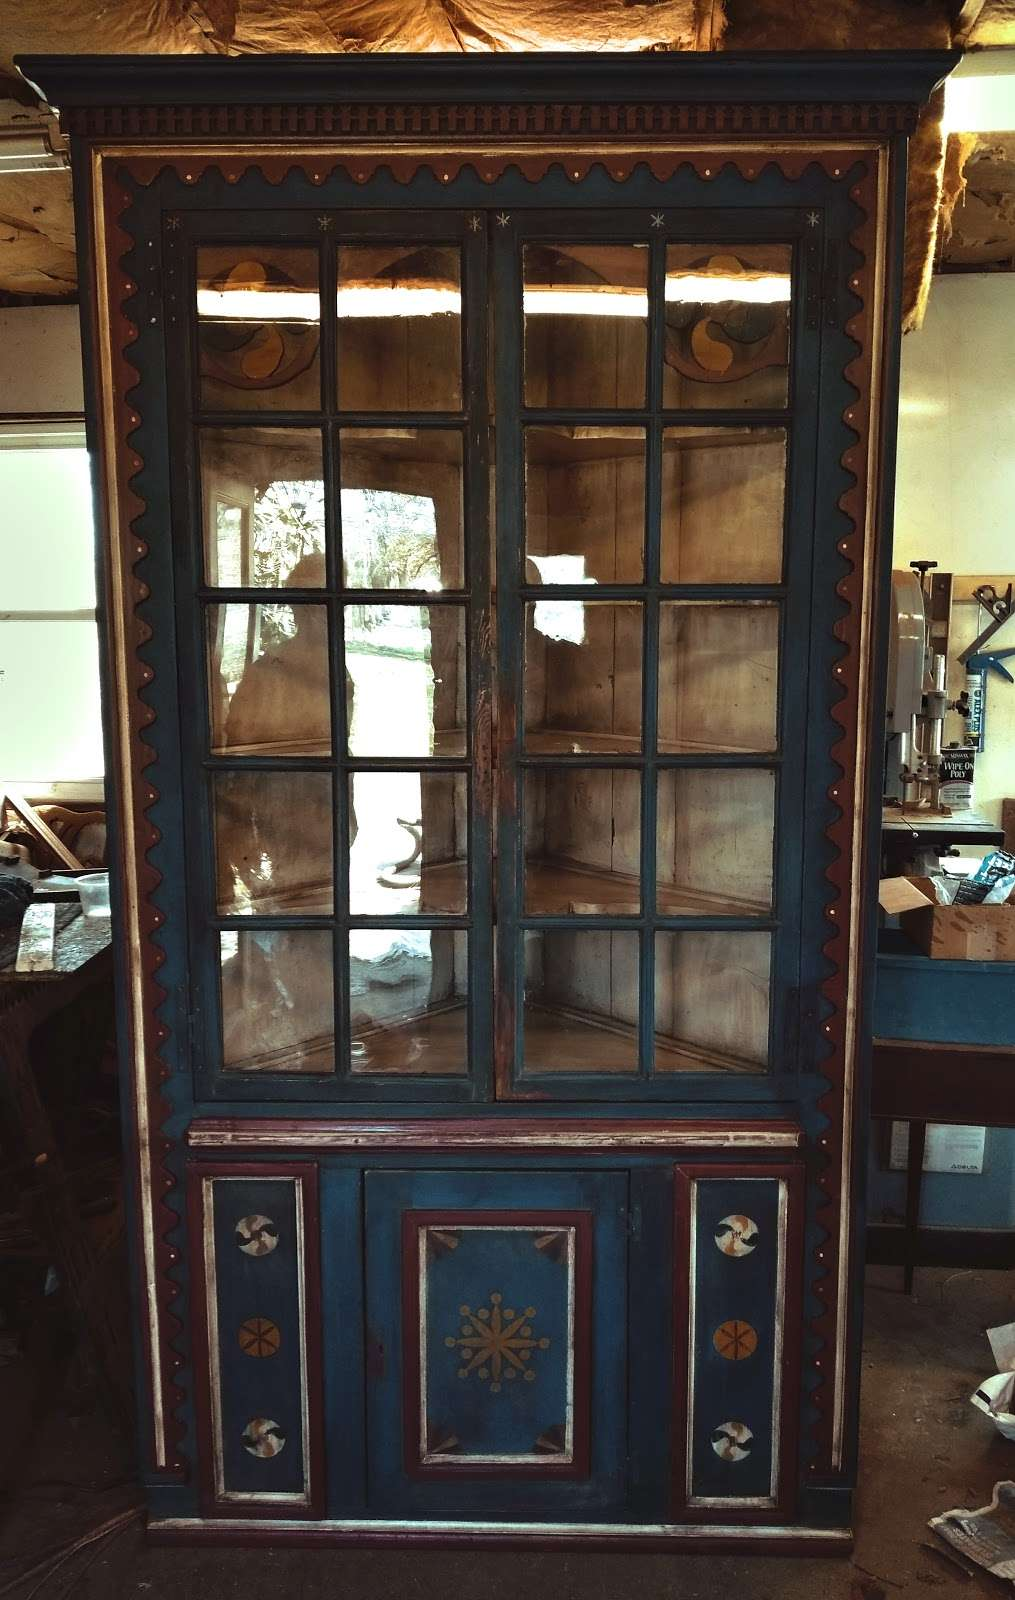 Springhill Antiques & Restoration Service - furniture store  | Photo 6 of 10 | Address: 2704 Merritt Mill Rd, Salisbury, MD 21804, USA | Phone: (443) 735-1967